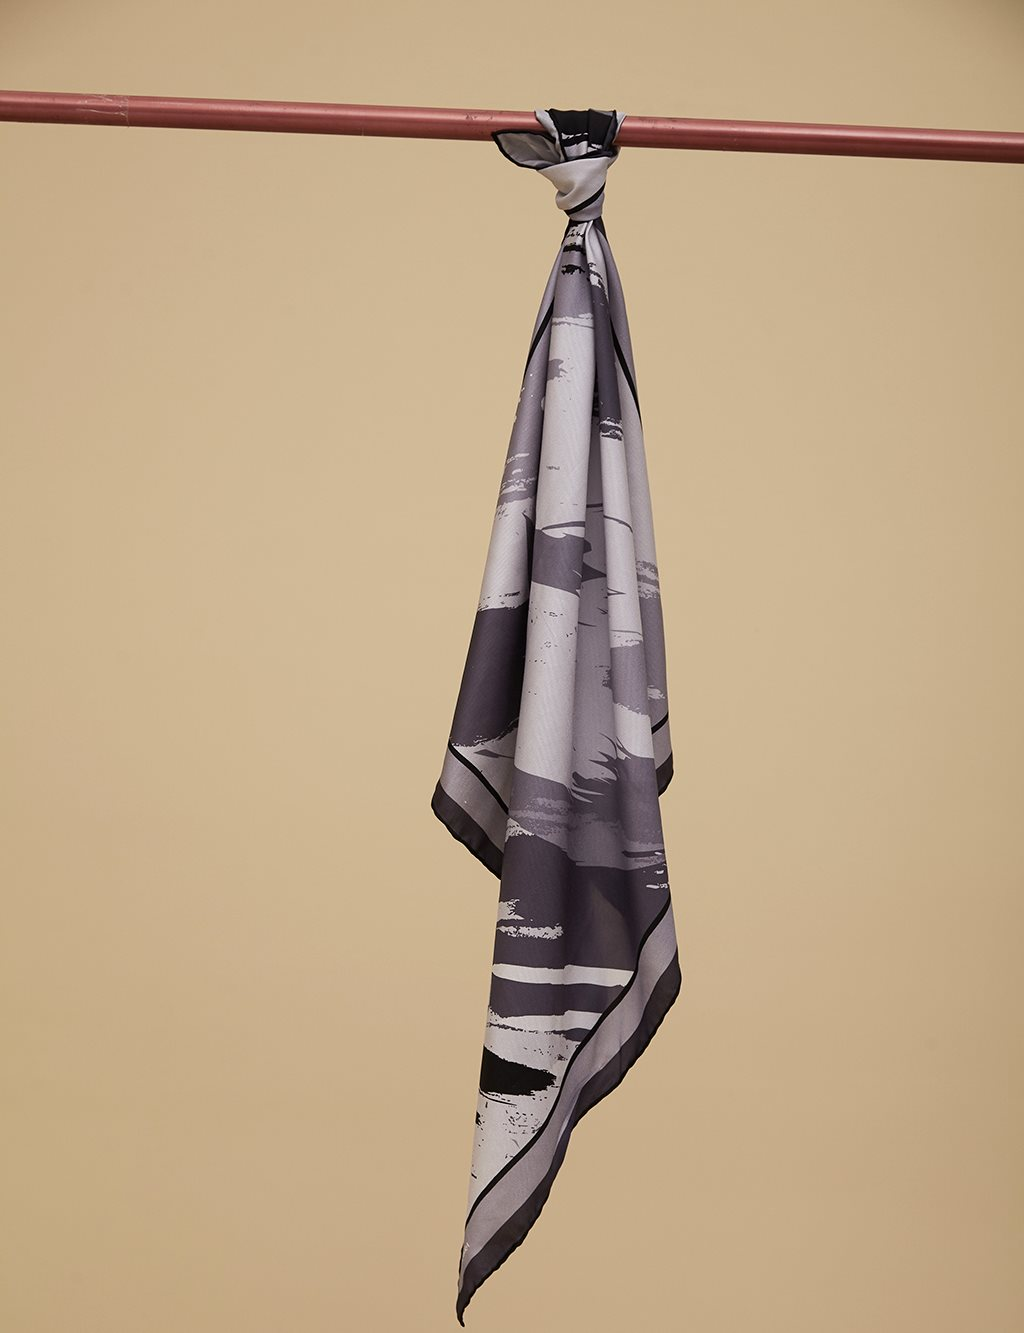 Intangible Patterned Twill Silk Scarf A9 ESP03 Black